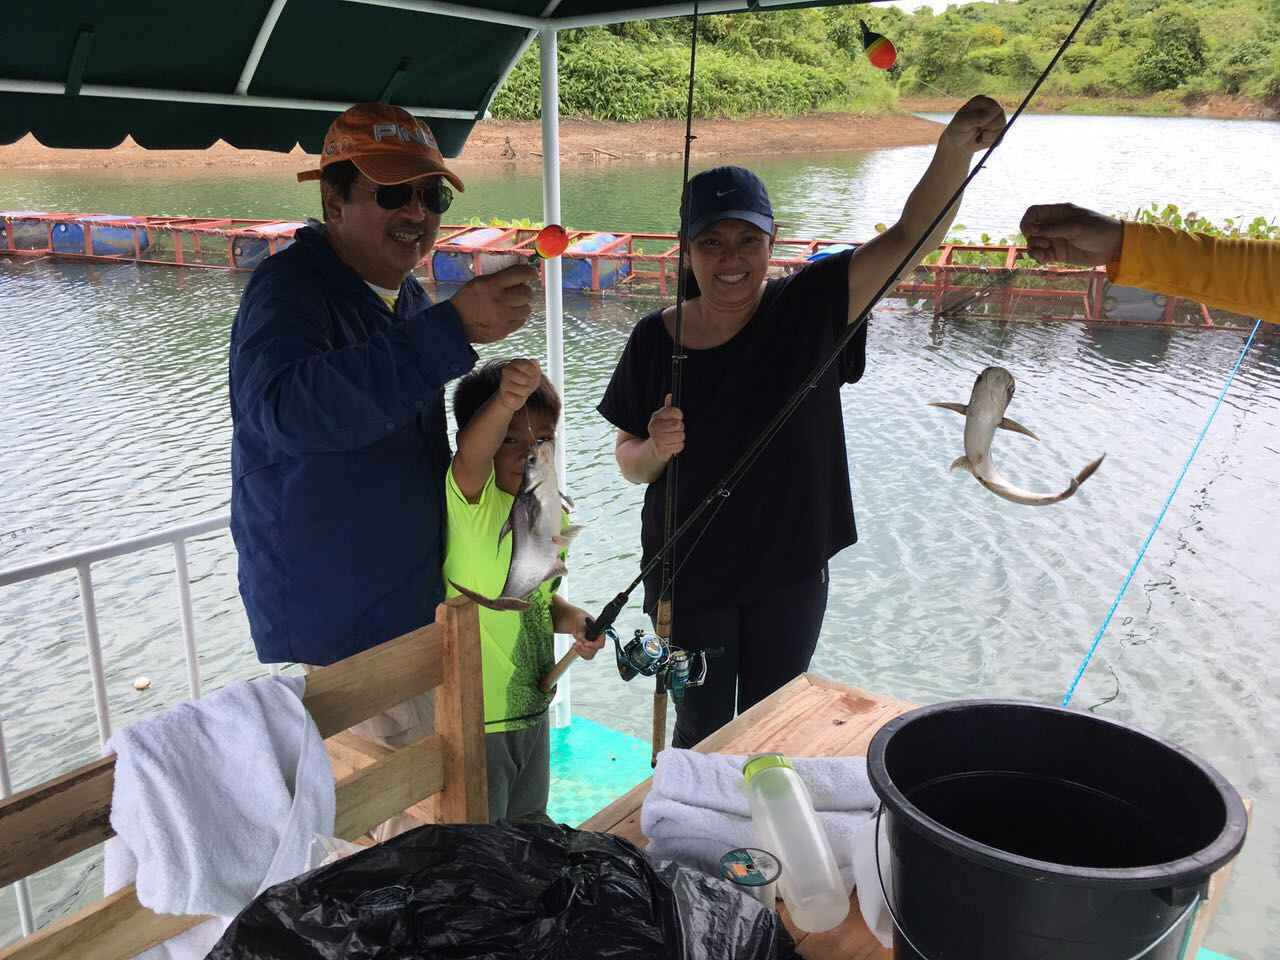 Caliraya_Springs_Golf_Fishing_Tournament-03.jpg